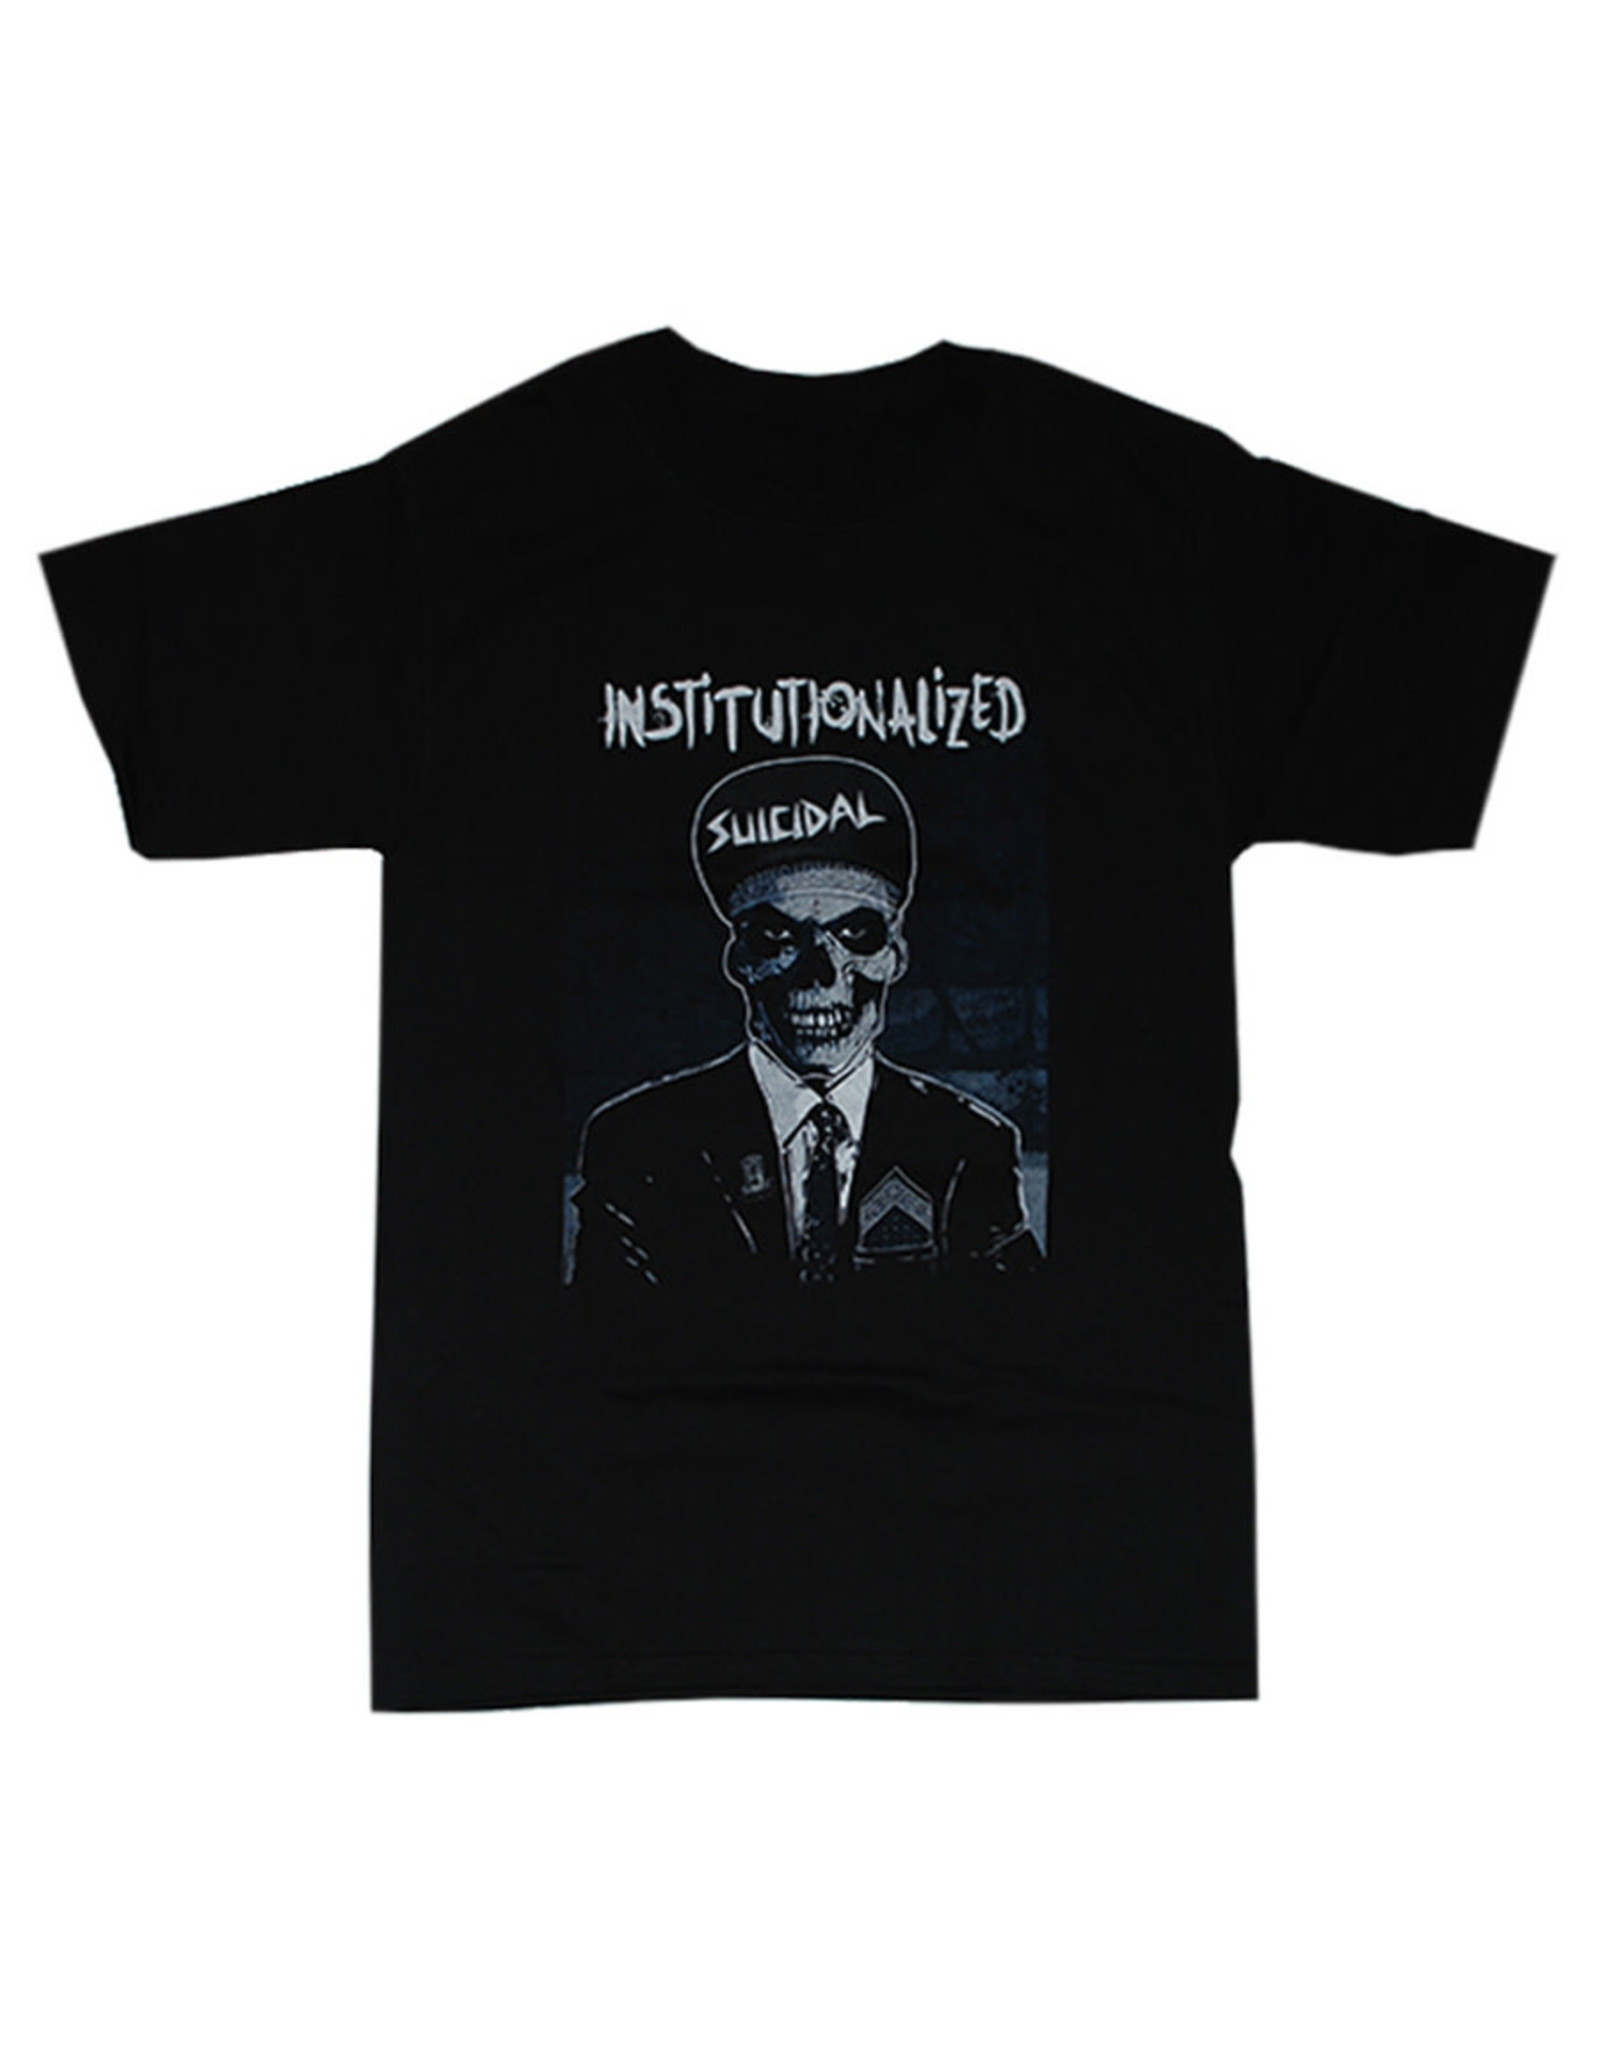 Star 500 Concert Series On Hollywood Tee Suicidal Tendencies Institutionalized Suit S/S (Black)